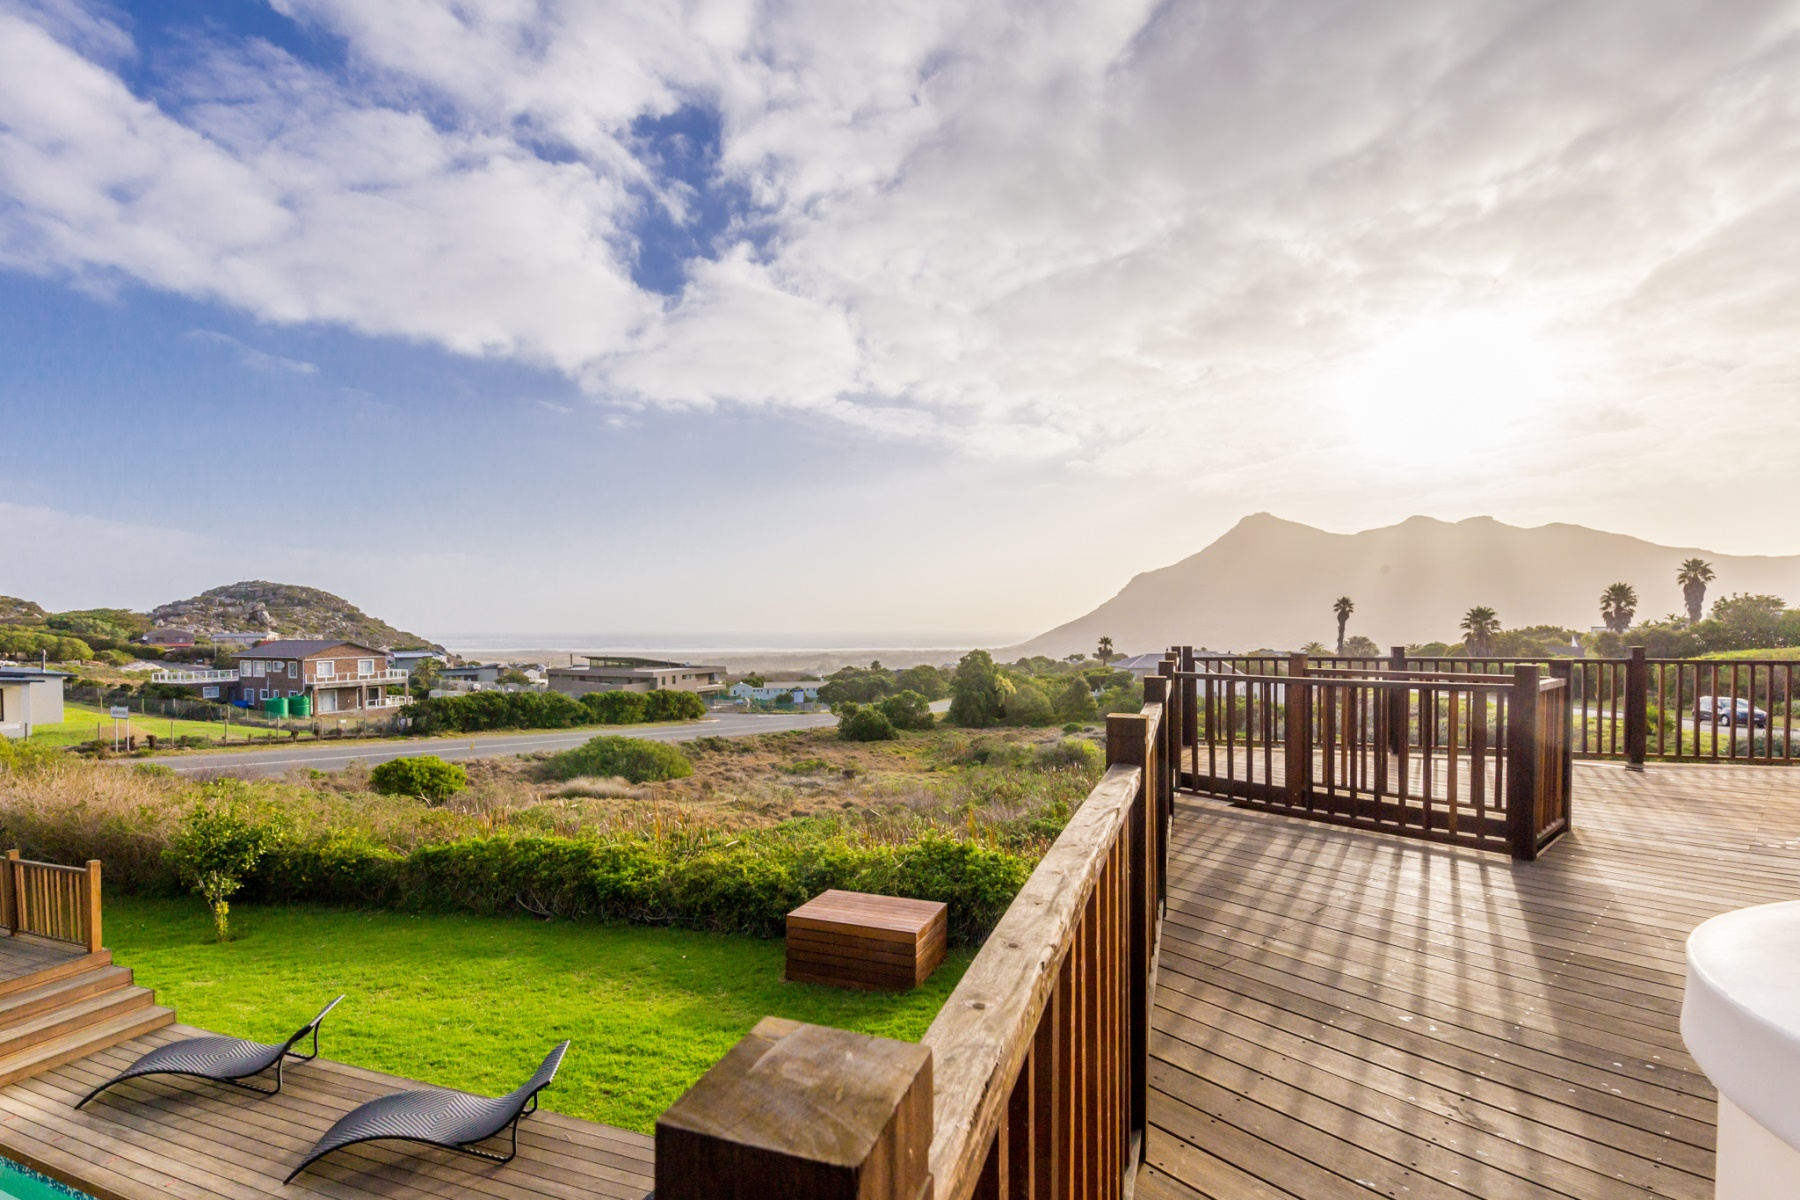 Single Family Home for Sale at Noordhoek Cape Town, Western Cape, South Africa